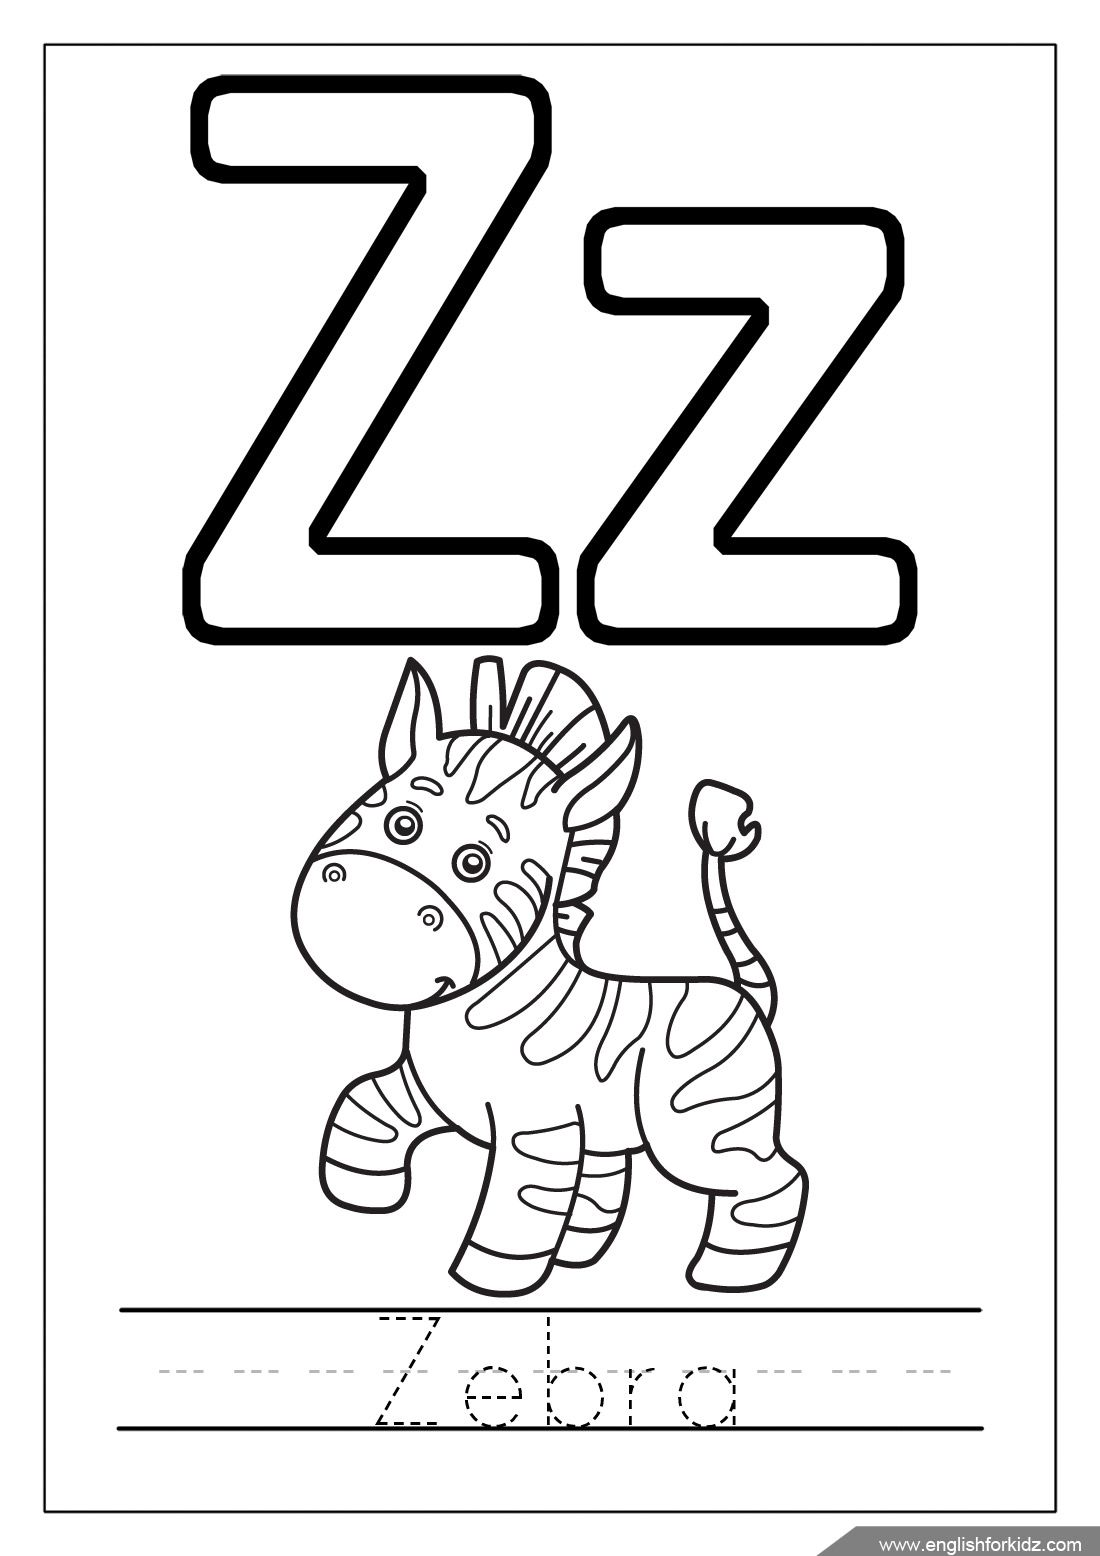 Capital Letter Z Coloring Pages Maze Sketch Coloring Page